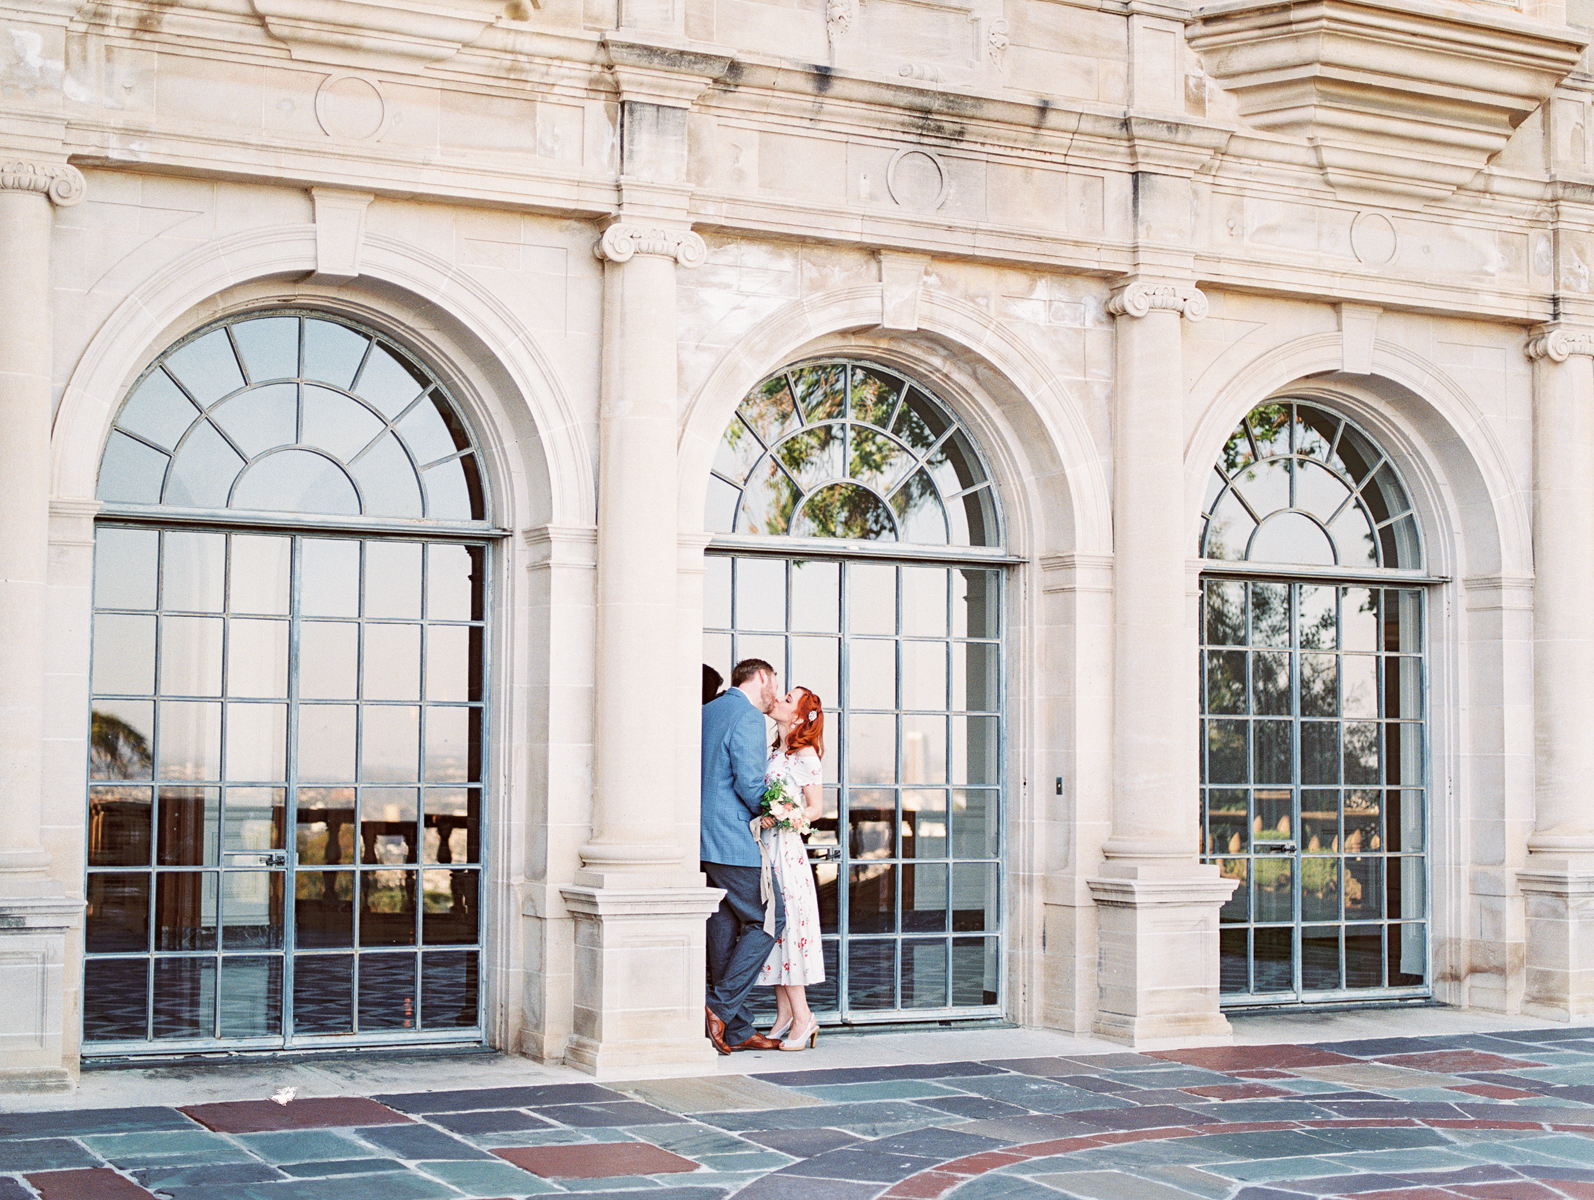 AKP_Greystone_Mansion_Engagement_Session_Film_Photographer-5.jpg